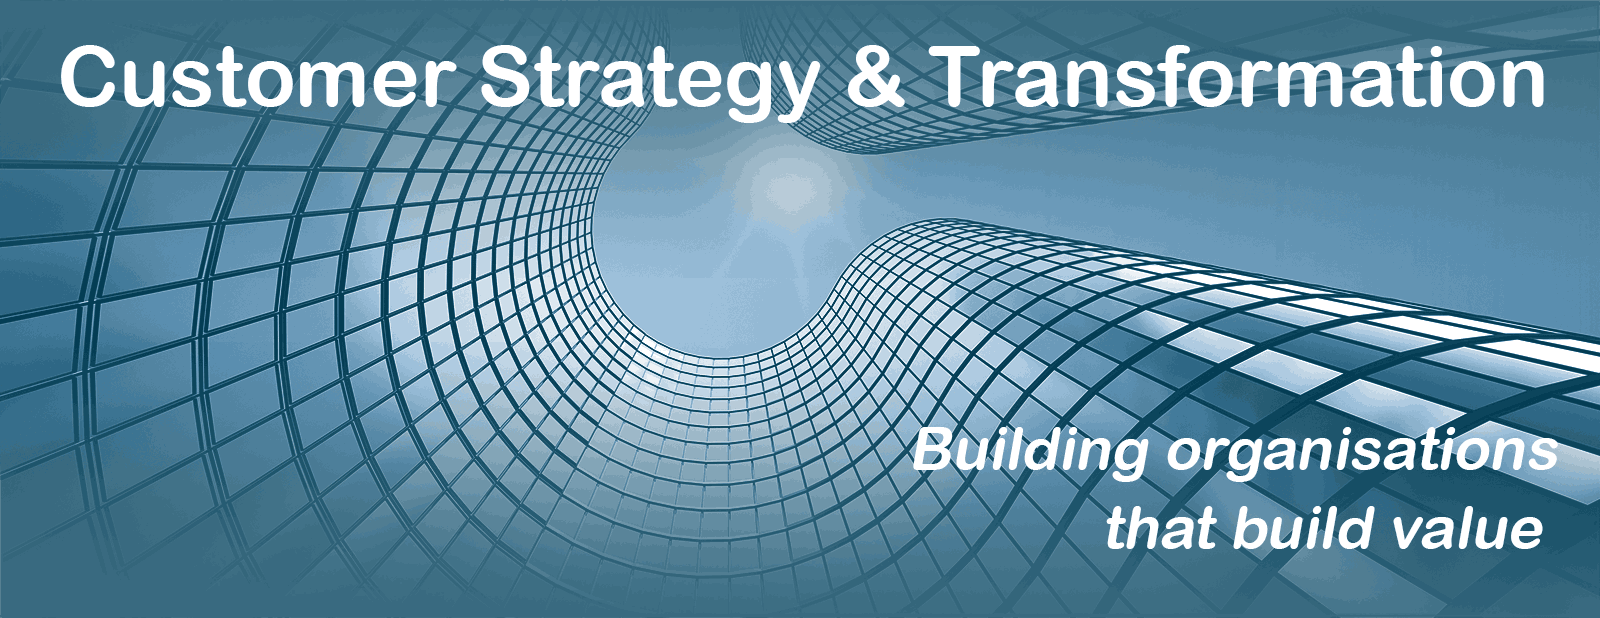 Customer Strategy & Transformation - Building organisations that build value